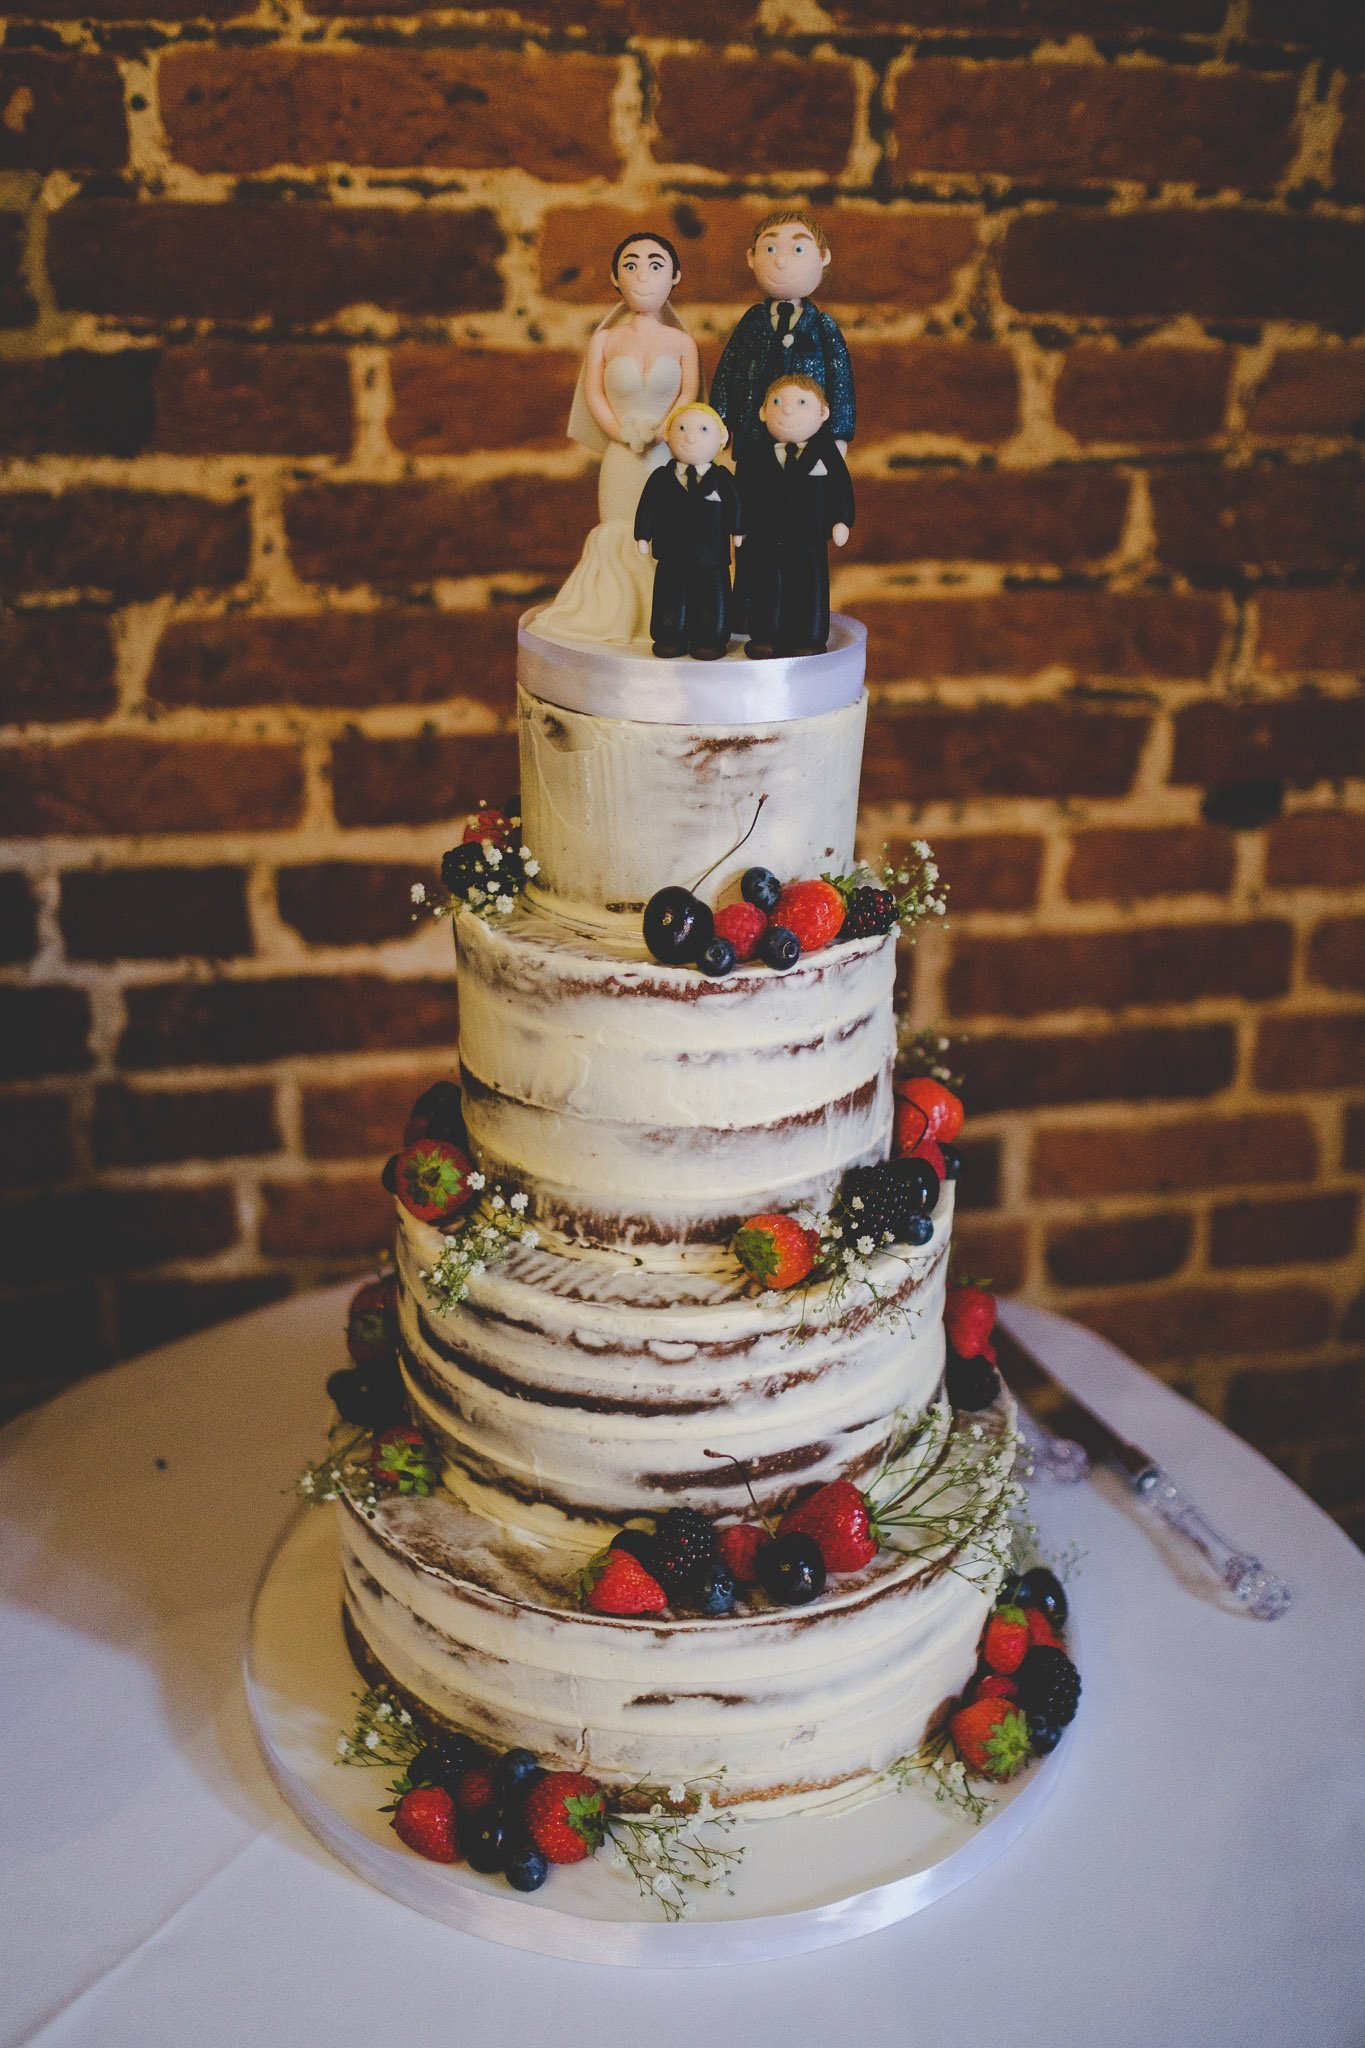 Naked wedding cake with family cake topper. Photography by thatthingyoupluck